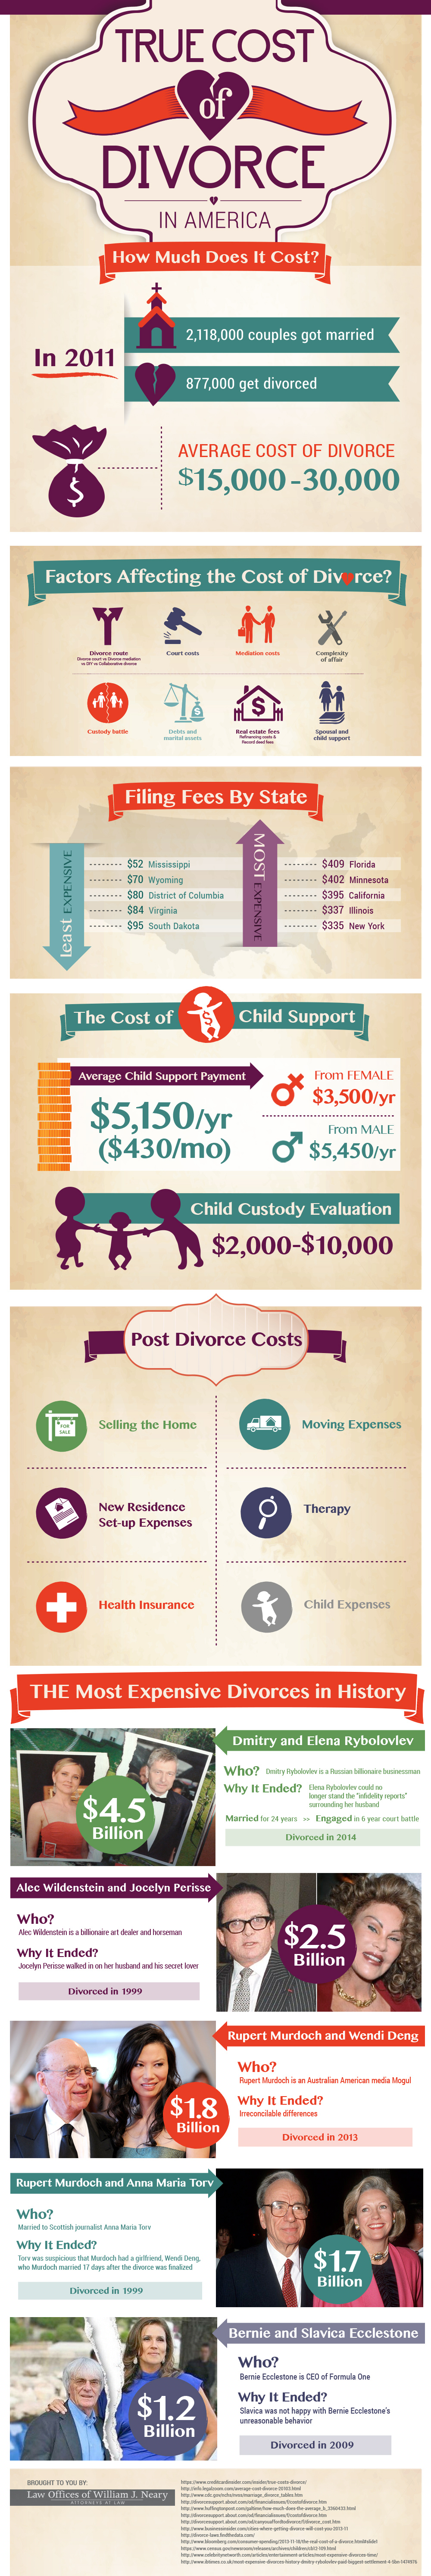 The True Cost of Divorce in America